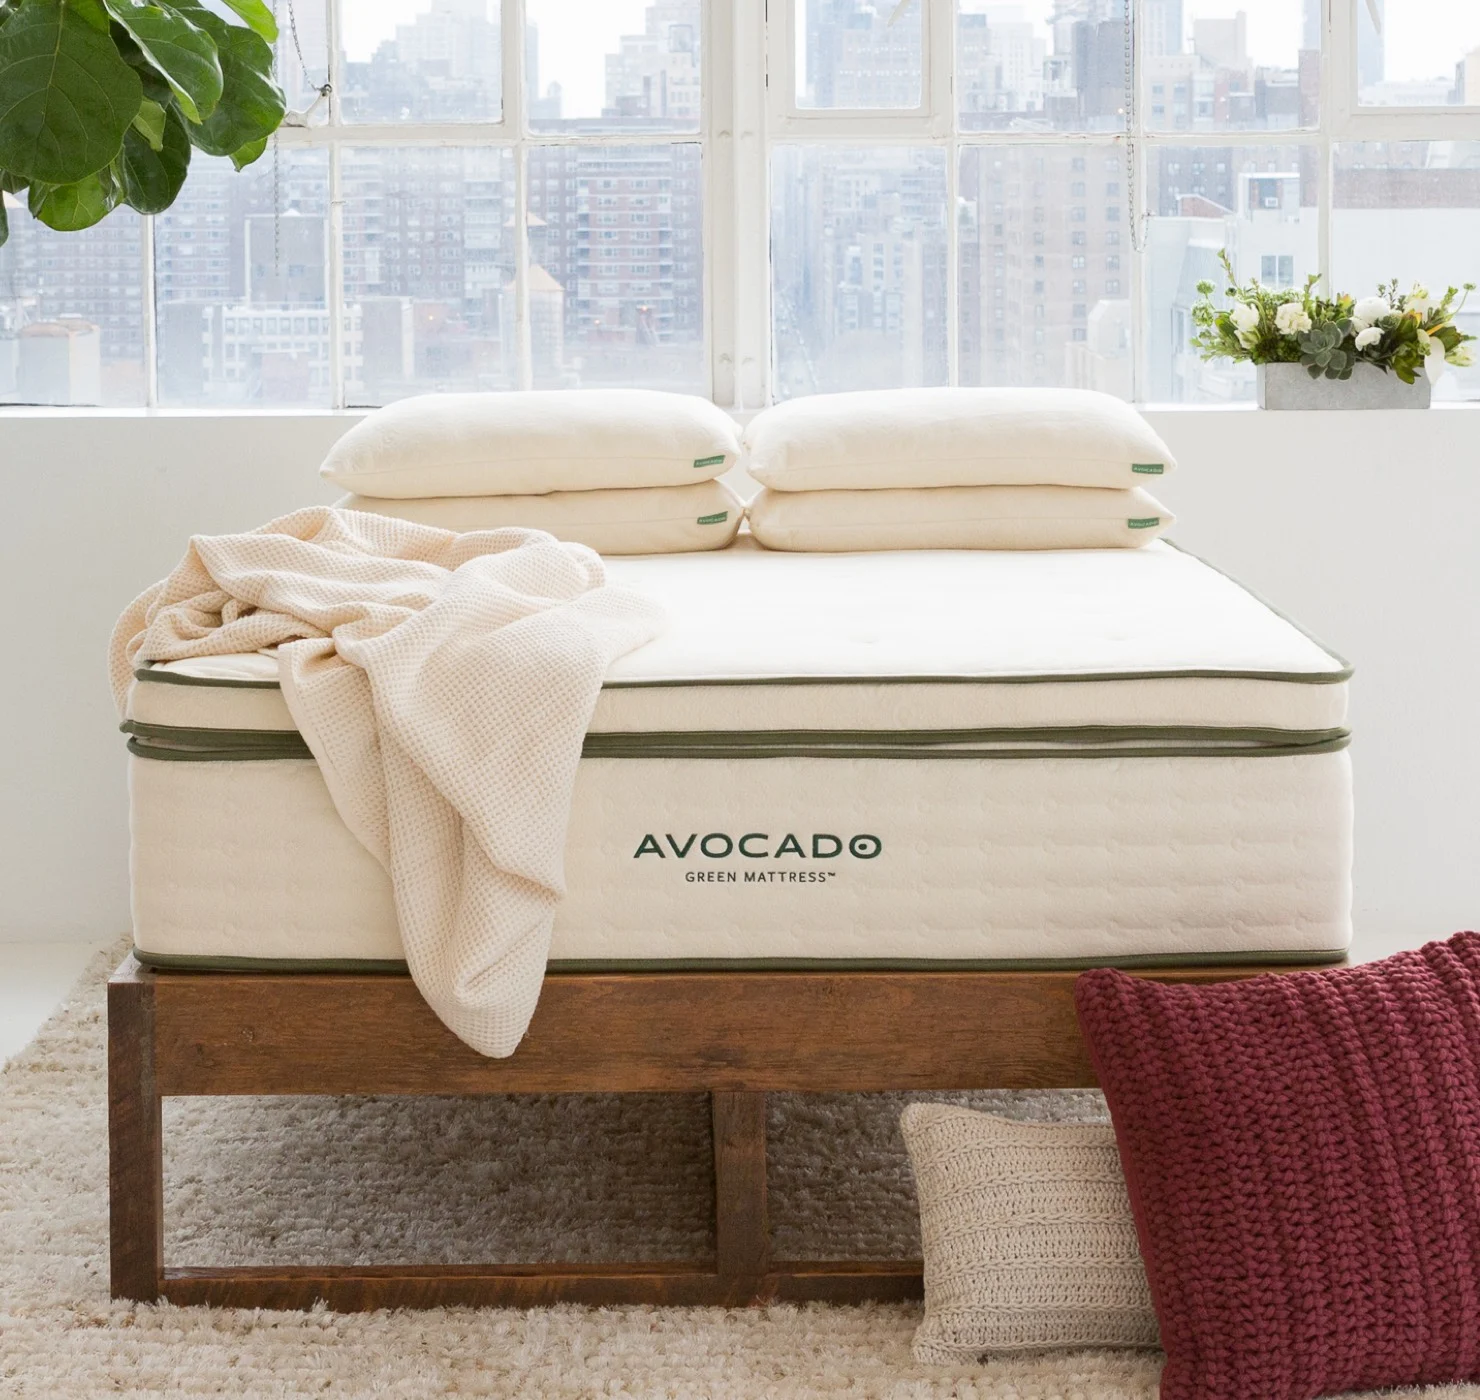 the avocado mattress topper made with organic cotton and latex